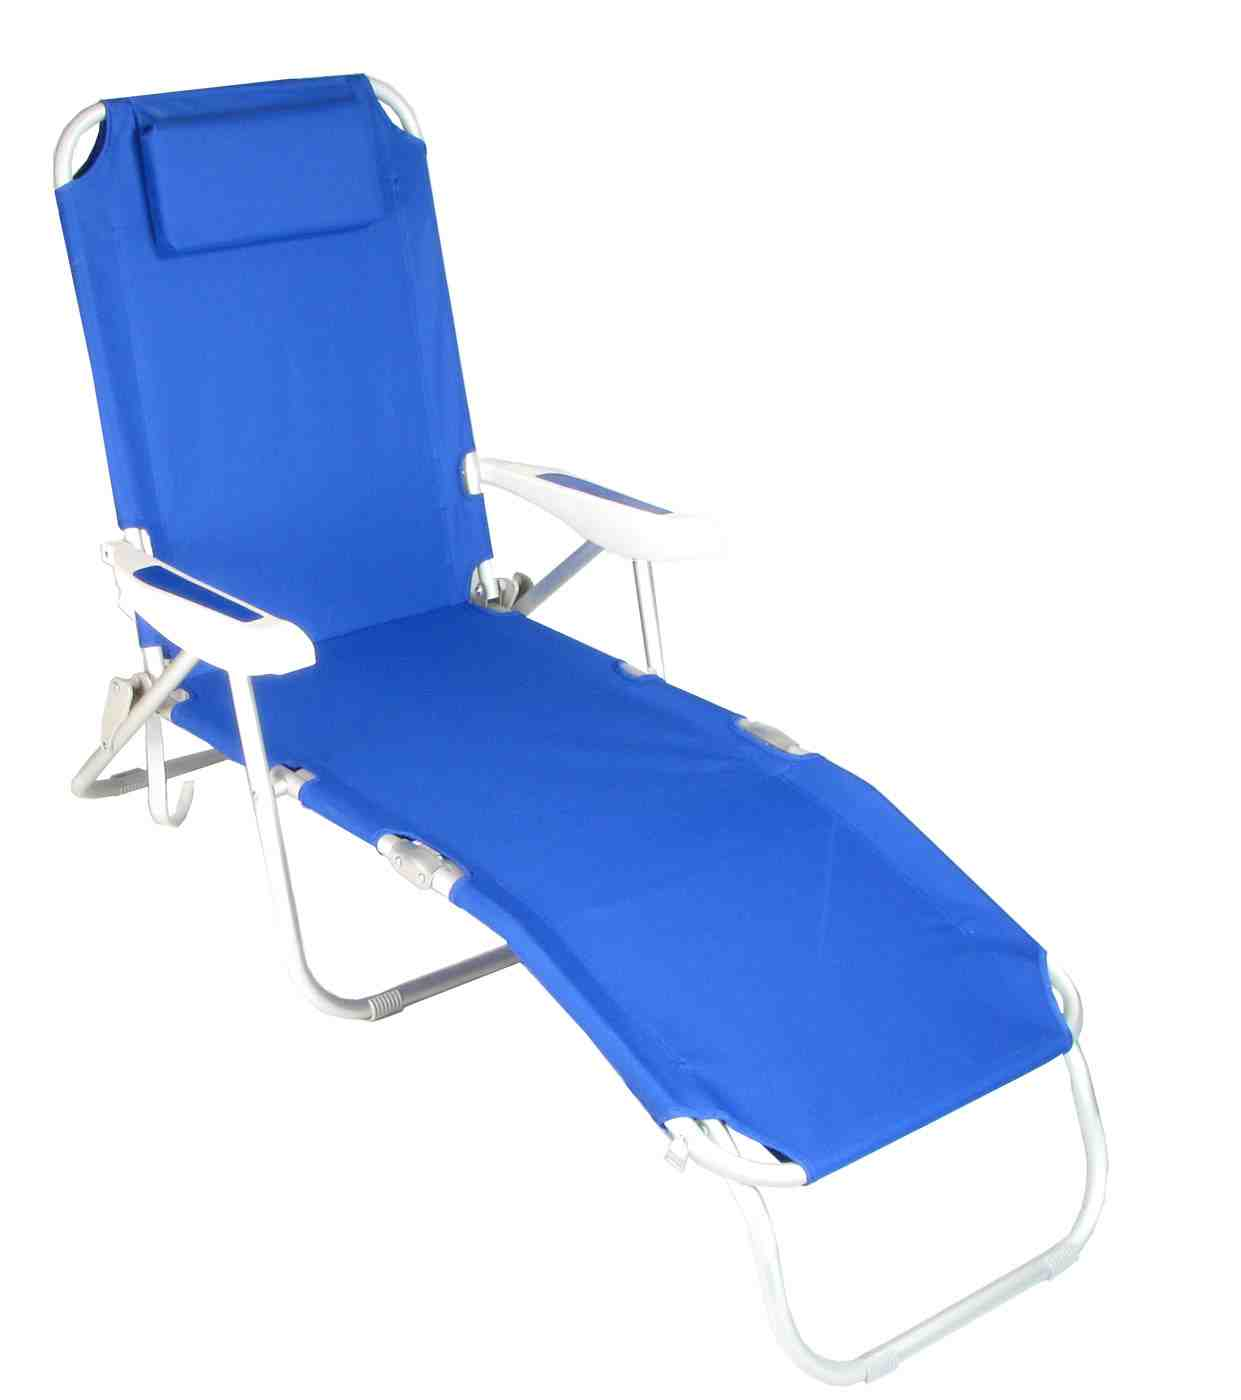 compact travel beach chairs crate and barrel outdoor dining folding chaise lounge decor ideasdecor ideas